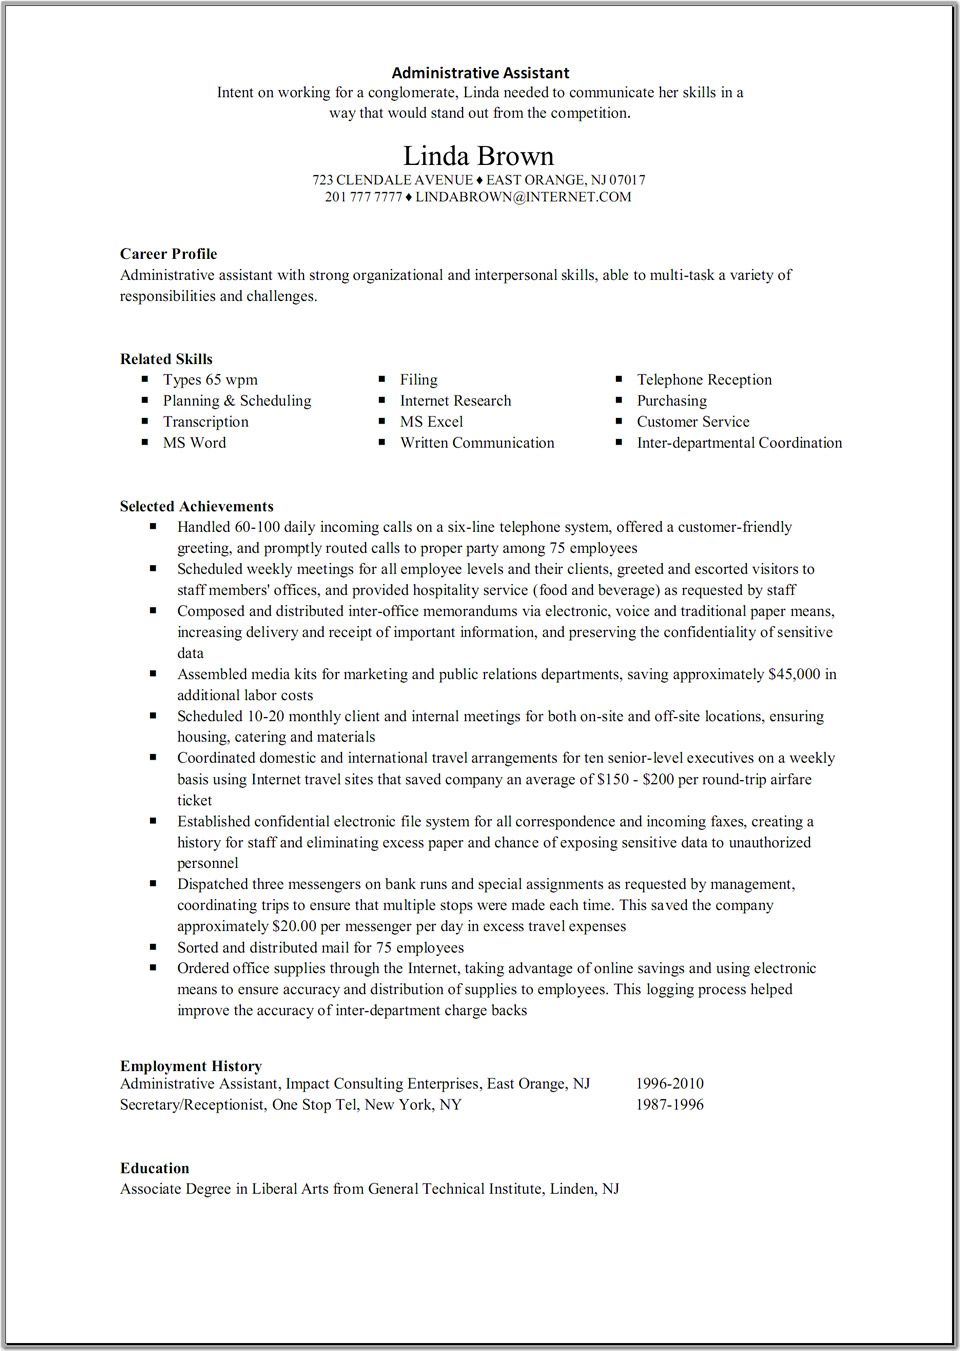 Administrative Assistant Resume Samples Great Administrative Assistant Resumes  Administrative Assistant